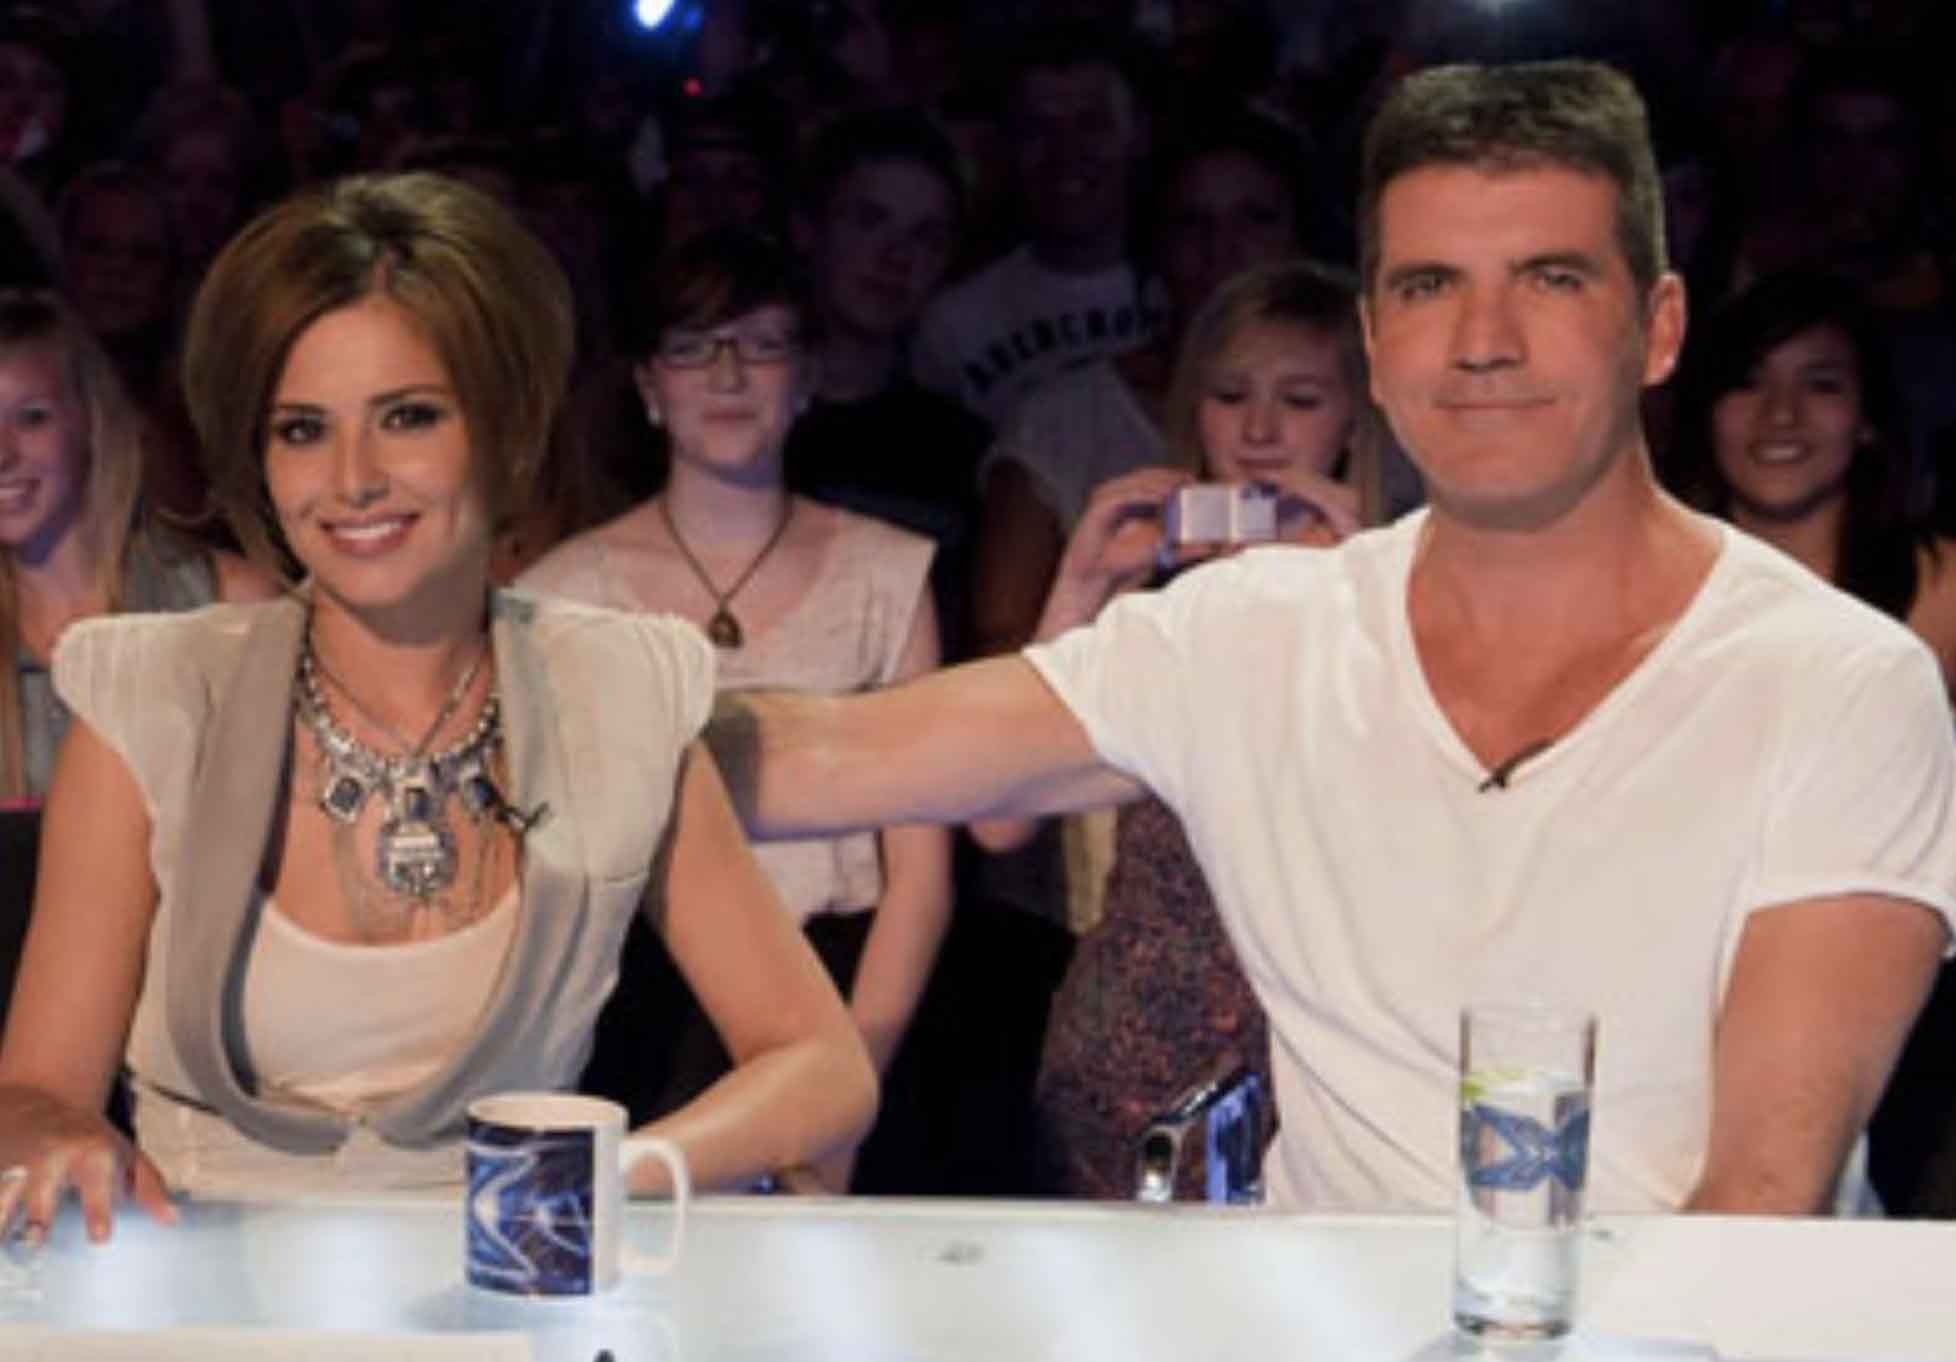 Simon Cowell teases another project with Cheryl following